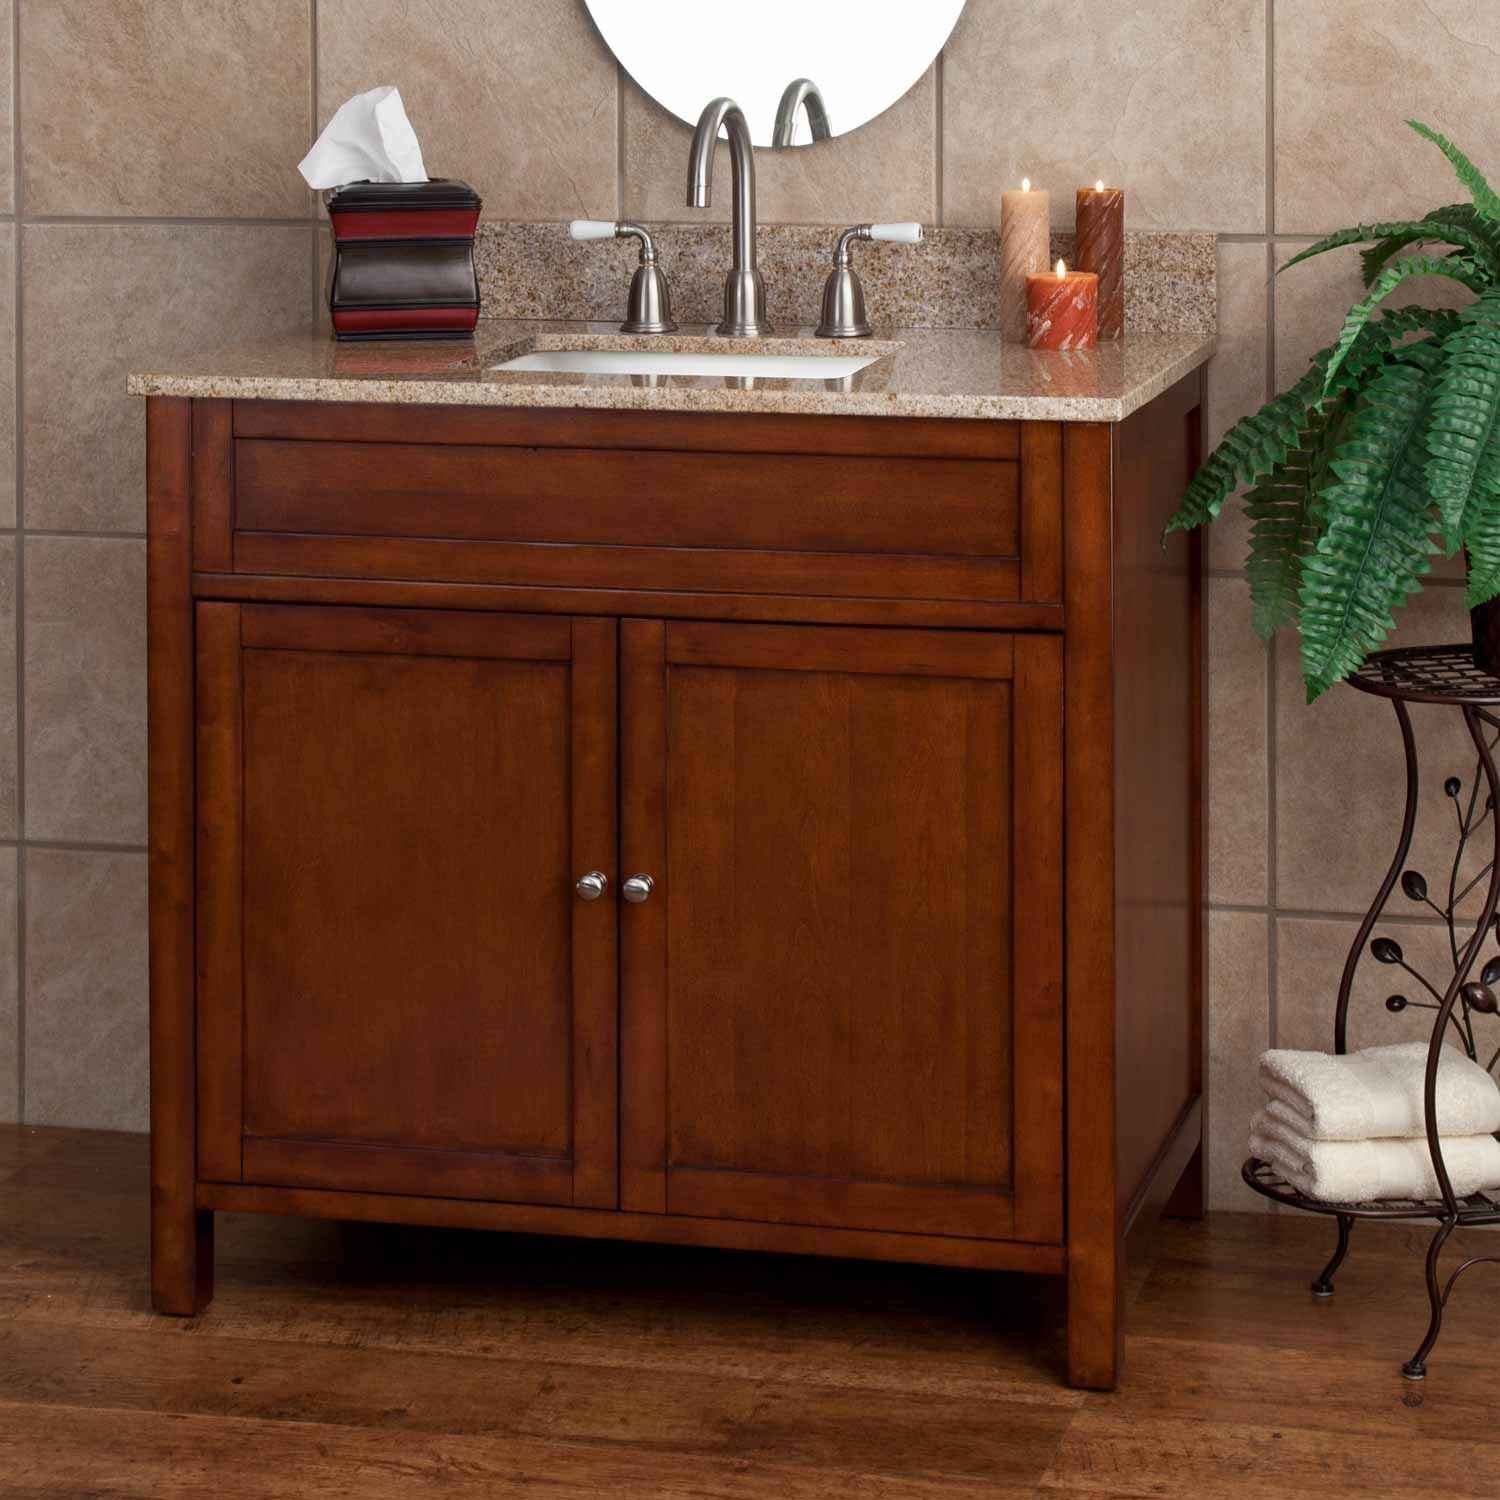 36 vanity on clearance for 394 great deal on bathroom vanity cabinets clearance id=94229